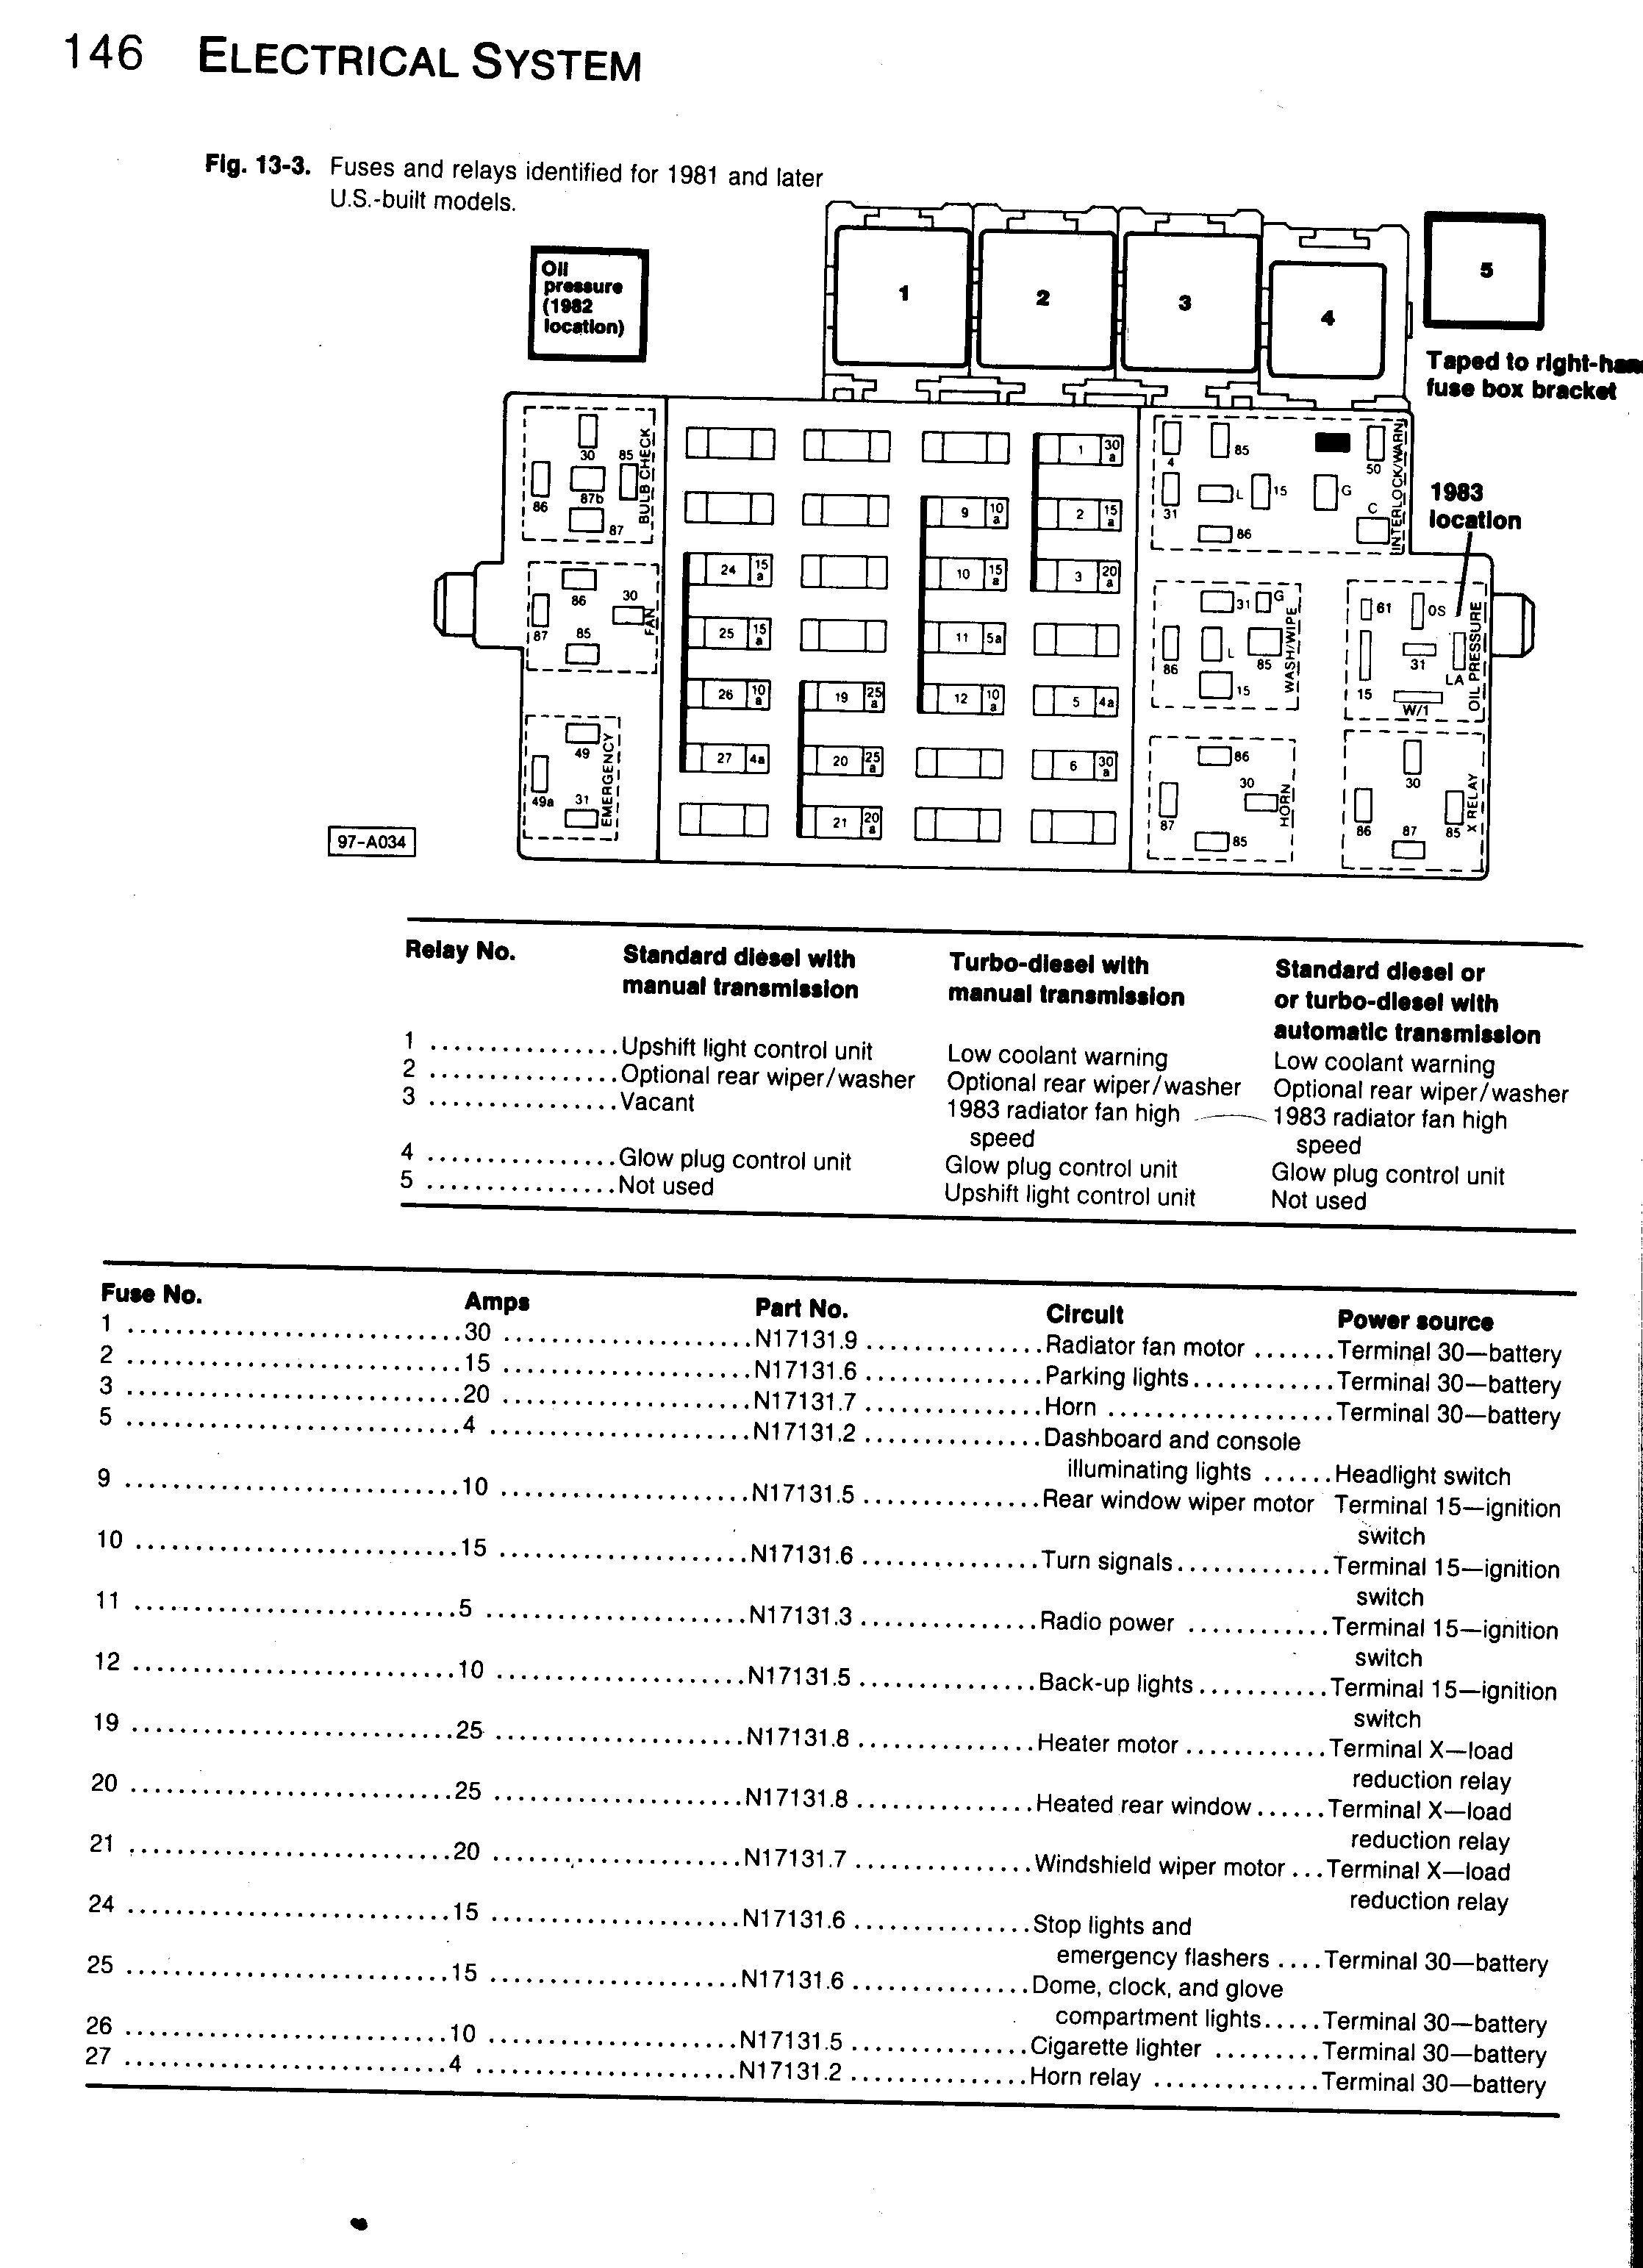 2005 Saab 9 5 Fuse Diagram Schematic Diagrams 2003 Engine 2011 Box Trusted Wiring 2006 3 Seat